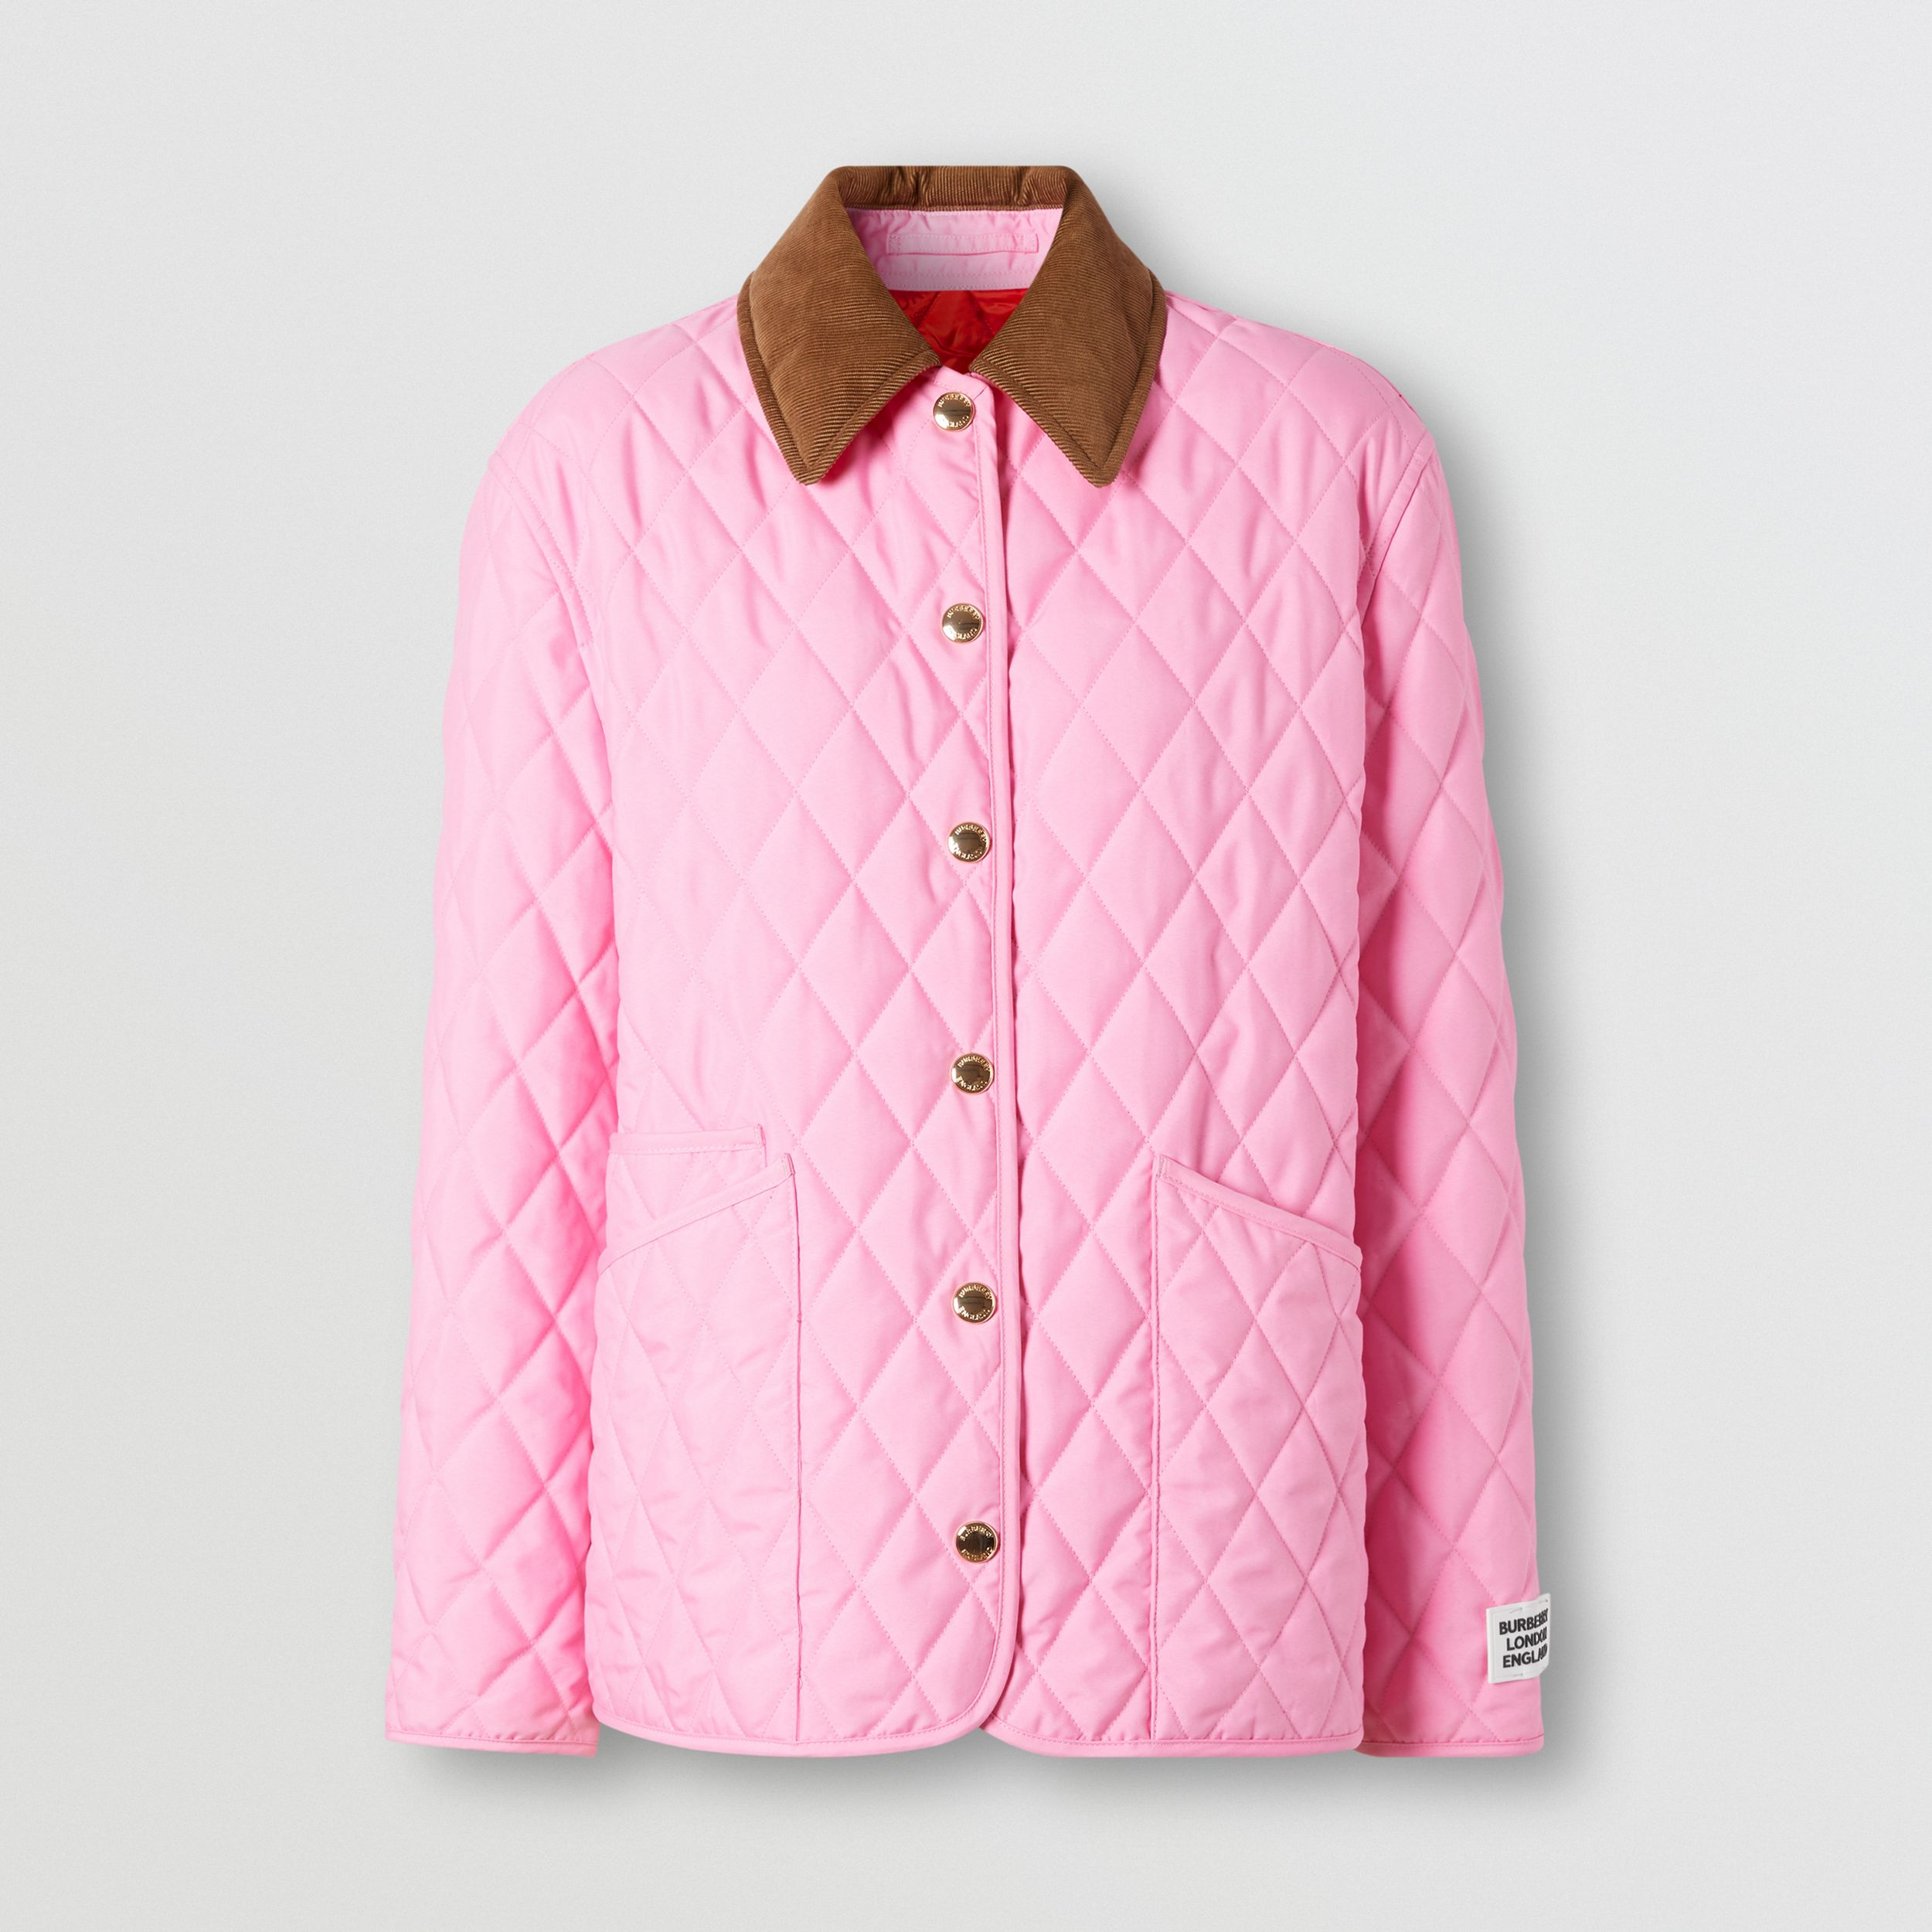 Corduroy Collar Diamond Quilted Jacket in Bubblegum Pink - Women | Burberry Australia - 4